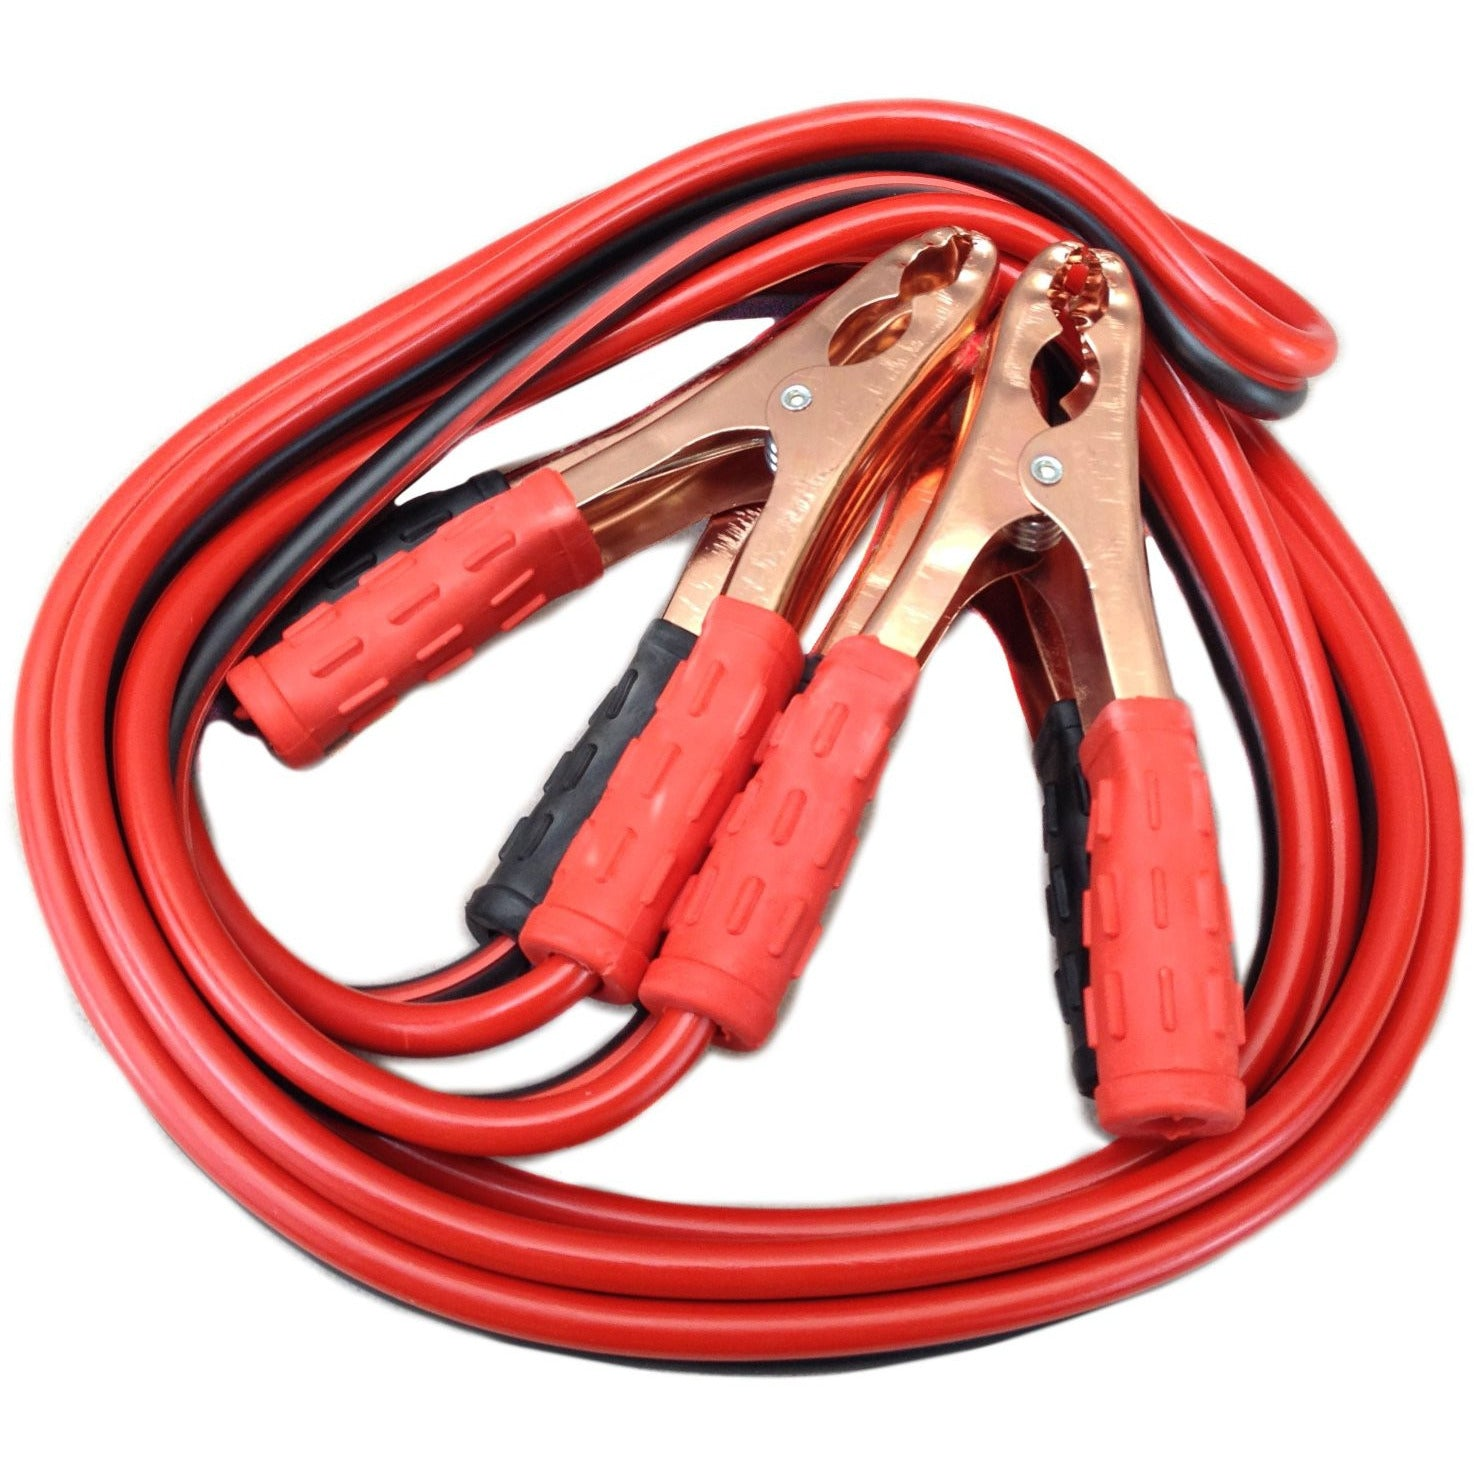 BOOSTER CABLE (300AMP)